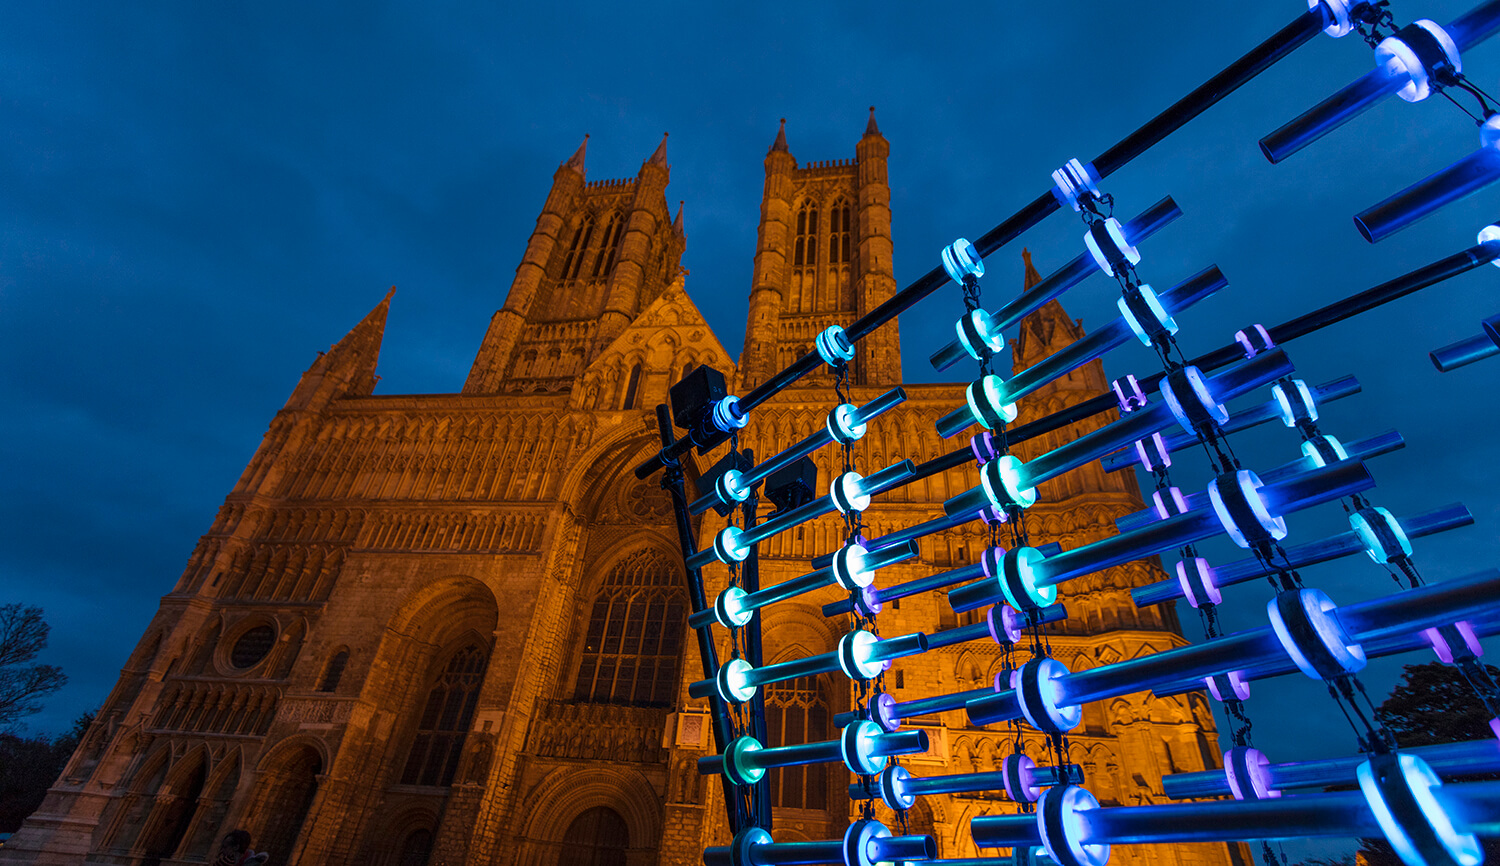 Illumaphonium light installation with blue lights outside Lincoln cathedral